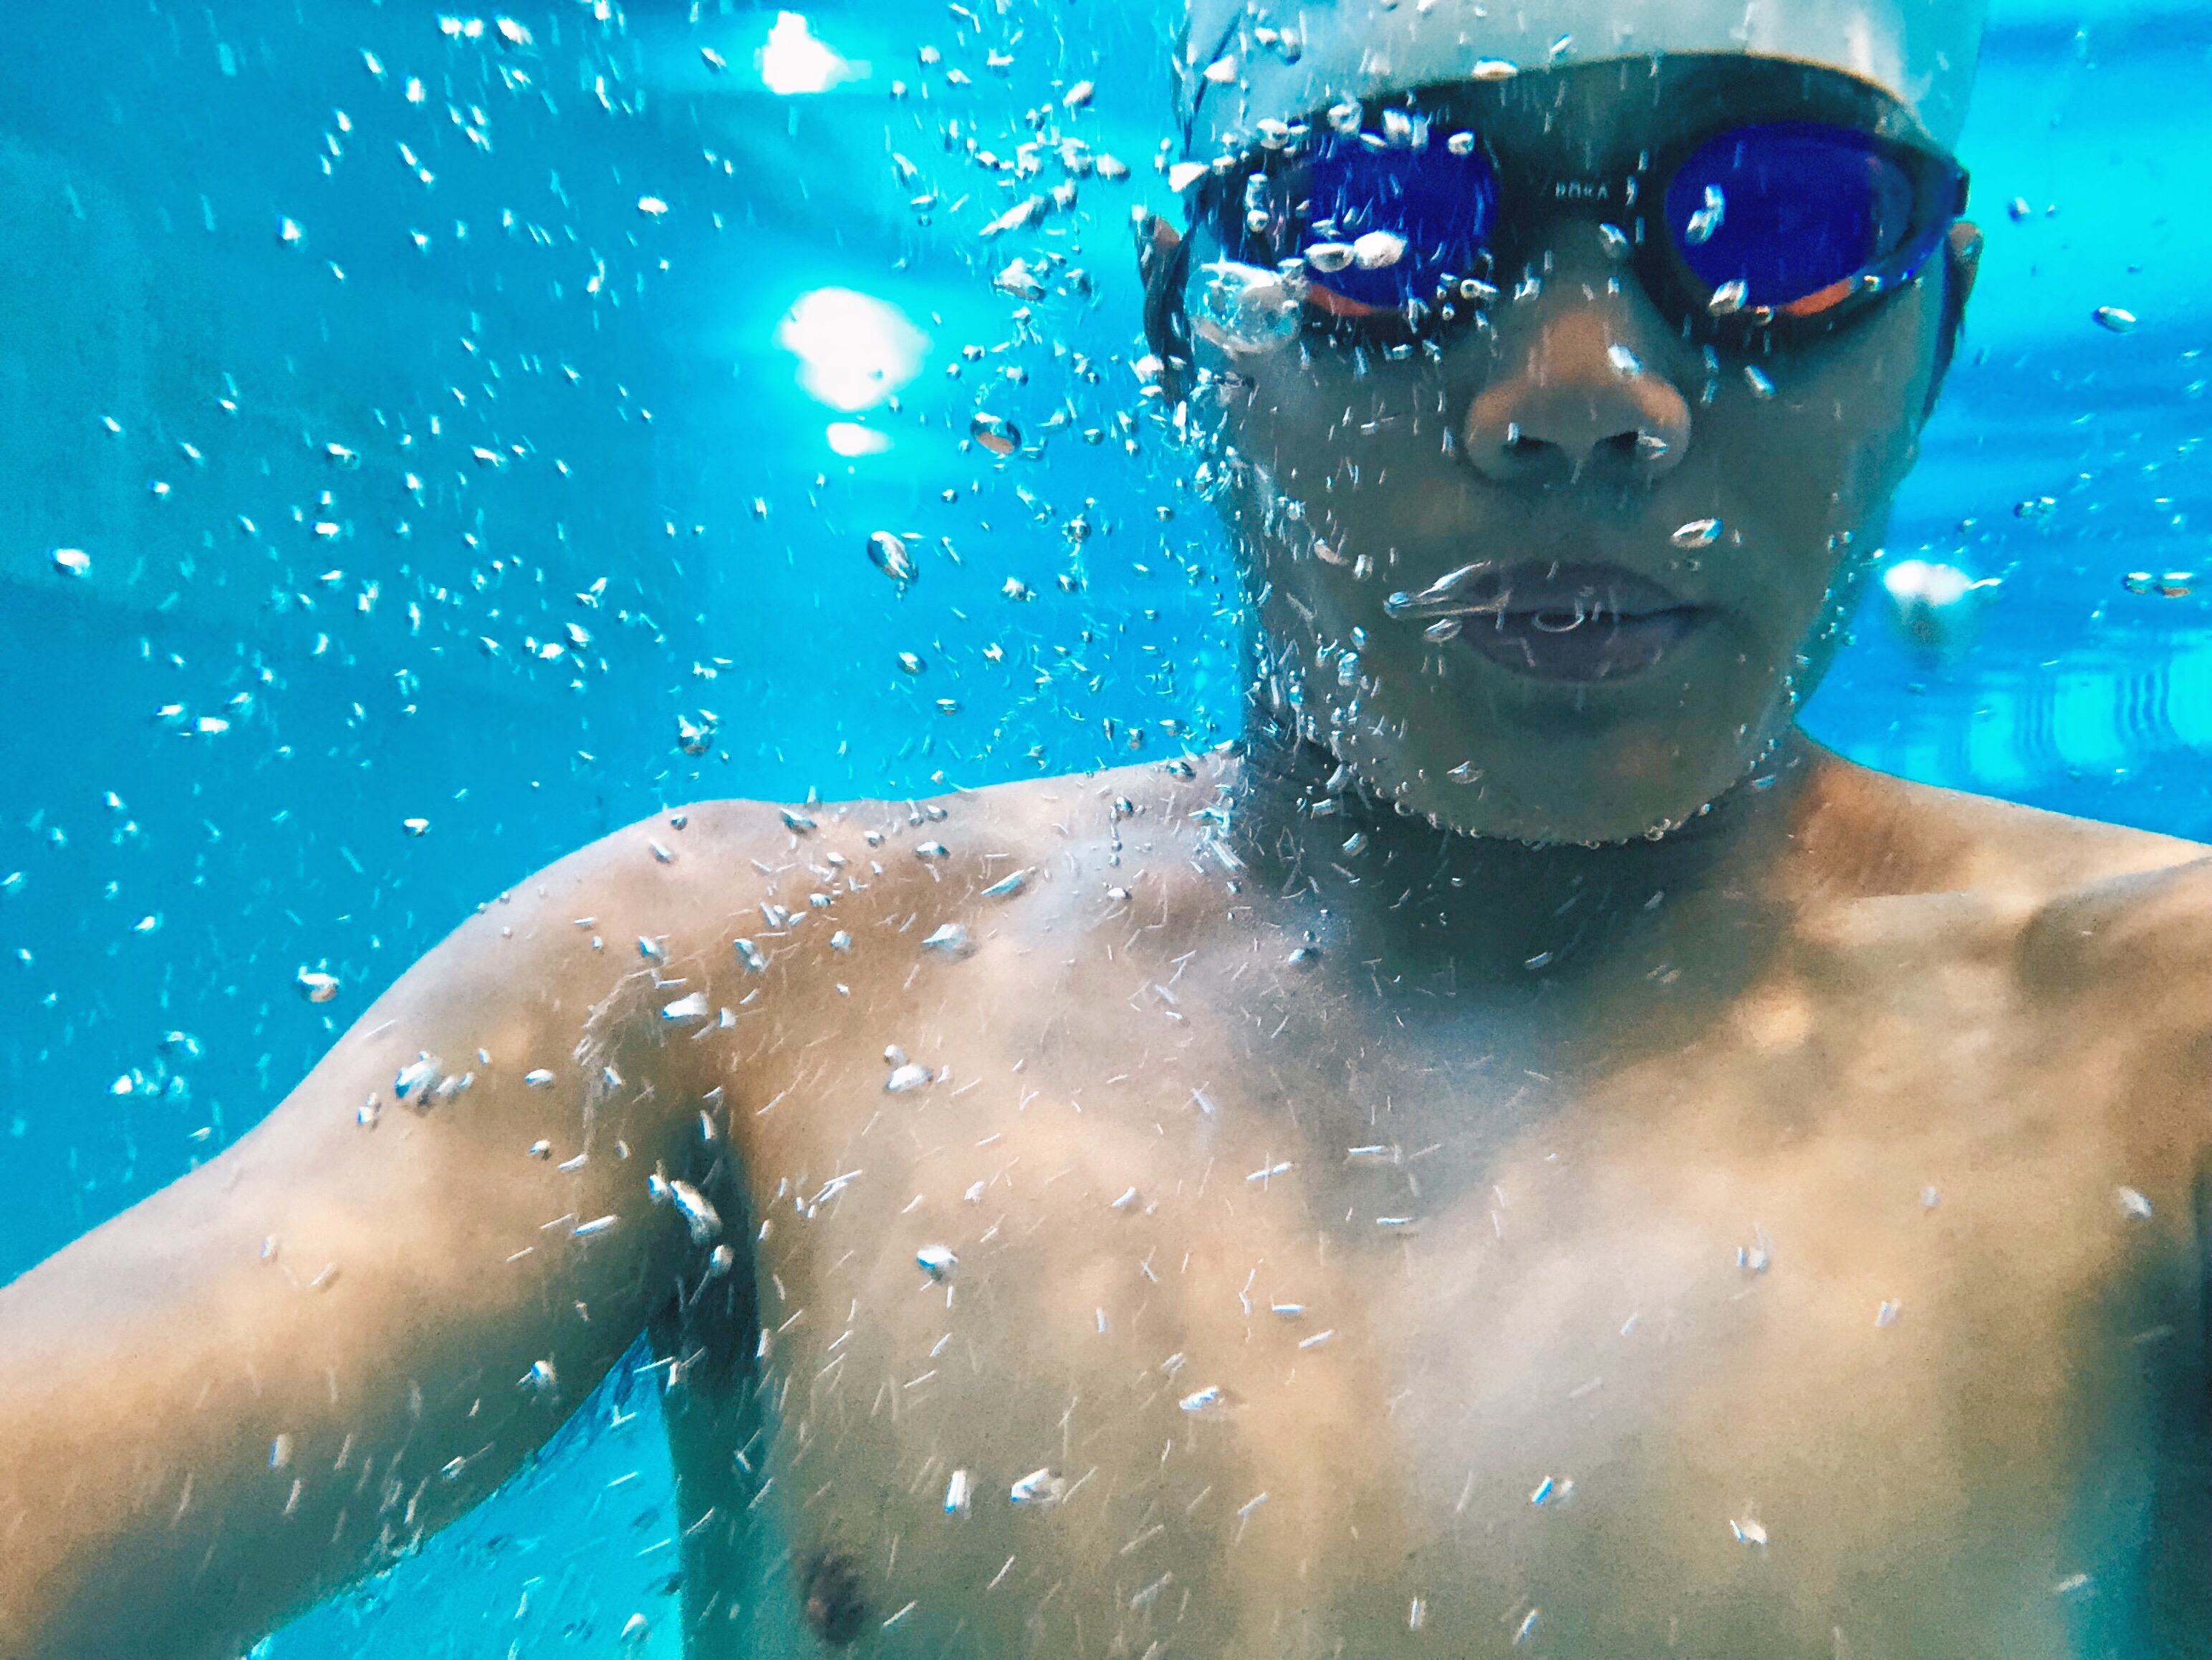 d745f3ad79 ... Sim Pro II Buoyancy Shorts, and the R1 Goggle. Let's start with the  eyewear. The ROKA R1 Goggle features RAPIDSIGHT technology, has high  durability, ...